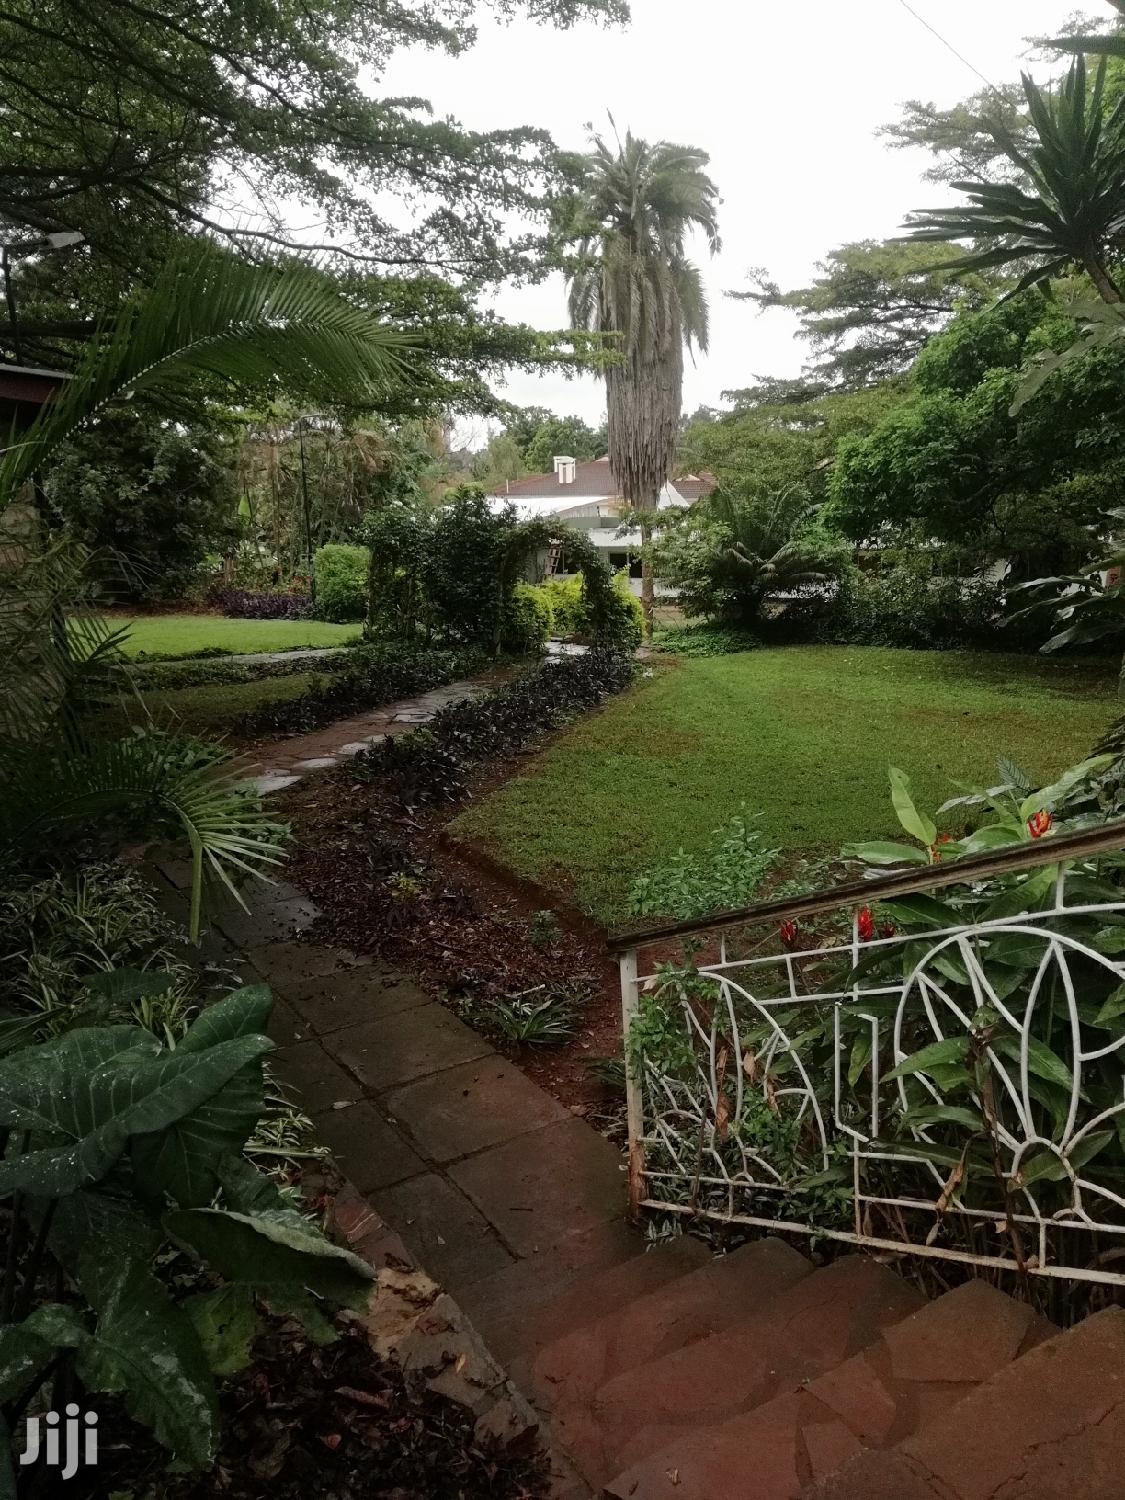 Propery World;1acre Plot With 5brs Bungalow And Very Secure